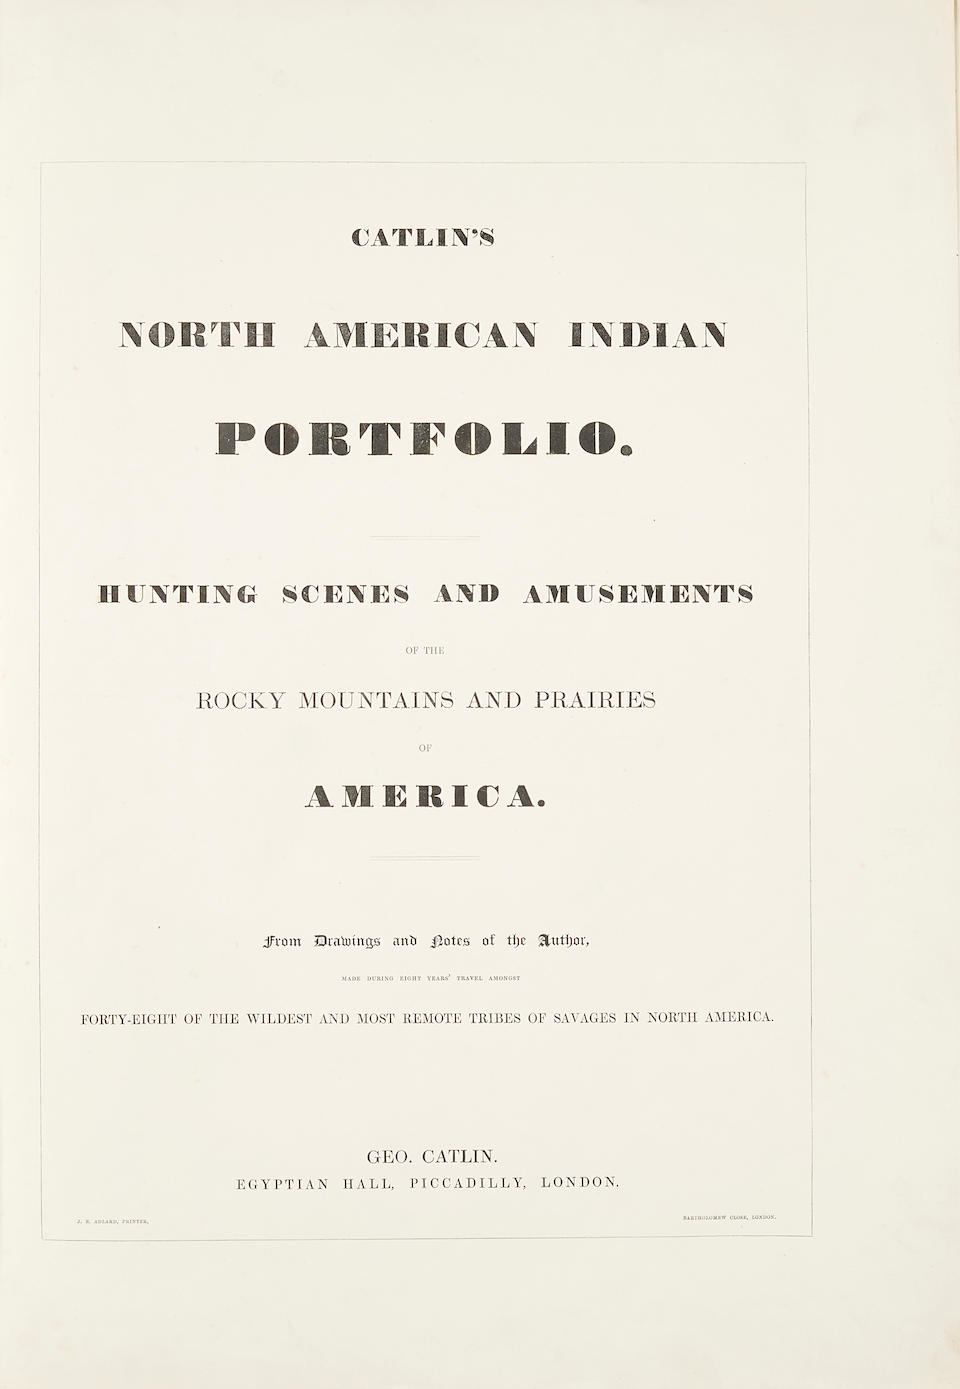 North American Indian Portfolio. London: 1844. 25 plates with original portfolio and text. CATLIN, GEORGE. 1796-1872. North American Indian Portfolio. Hunting scenes and amusements of the Rocky Mountains and prairies of America. From drawings and notes of the author, made during eight years' travel amongst forty-eight of the wildest and most remote tribes of savages in North America. London: Geo. Catlin & J.E. Adlard, [c.1855].